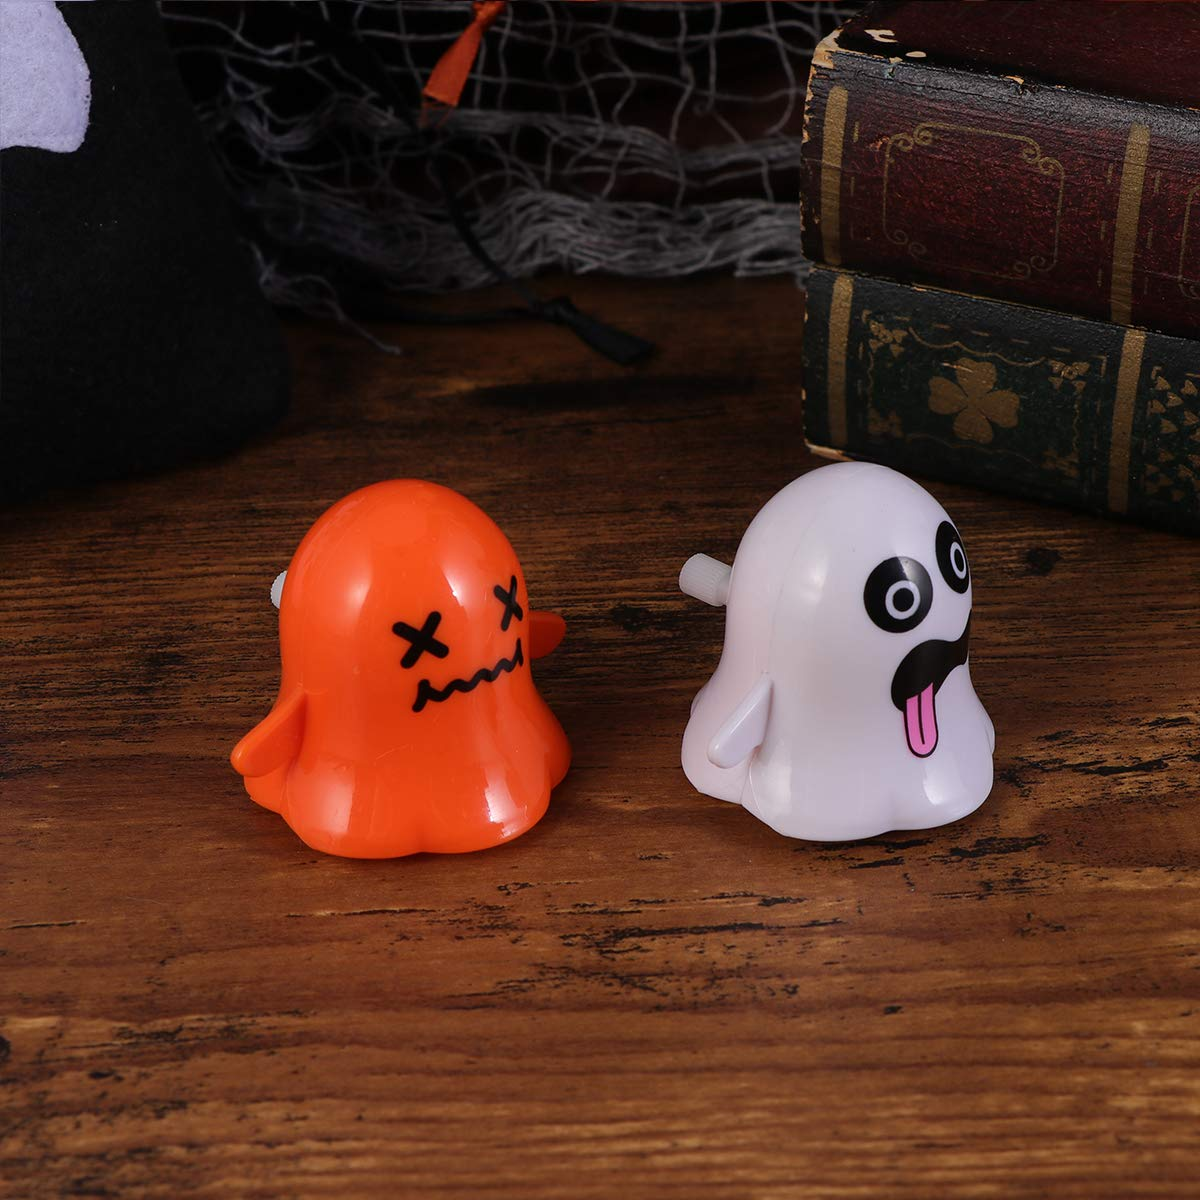 AMOSFUN Halloween Wind up Toys Ghost Clockwork Toys Walking Props Novelty Mini Toys Funny toy Ornament for Halloween Party Kids Favors 2pcs